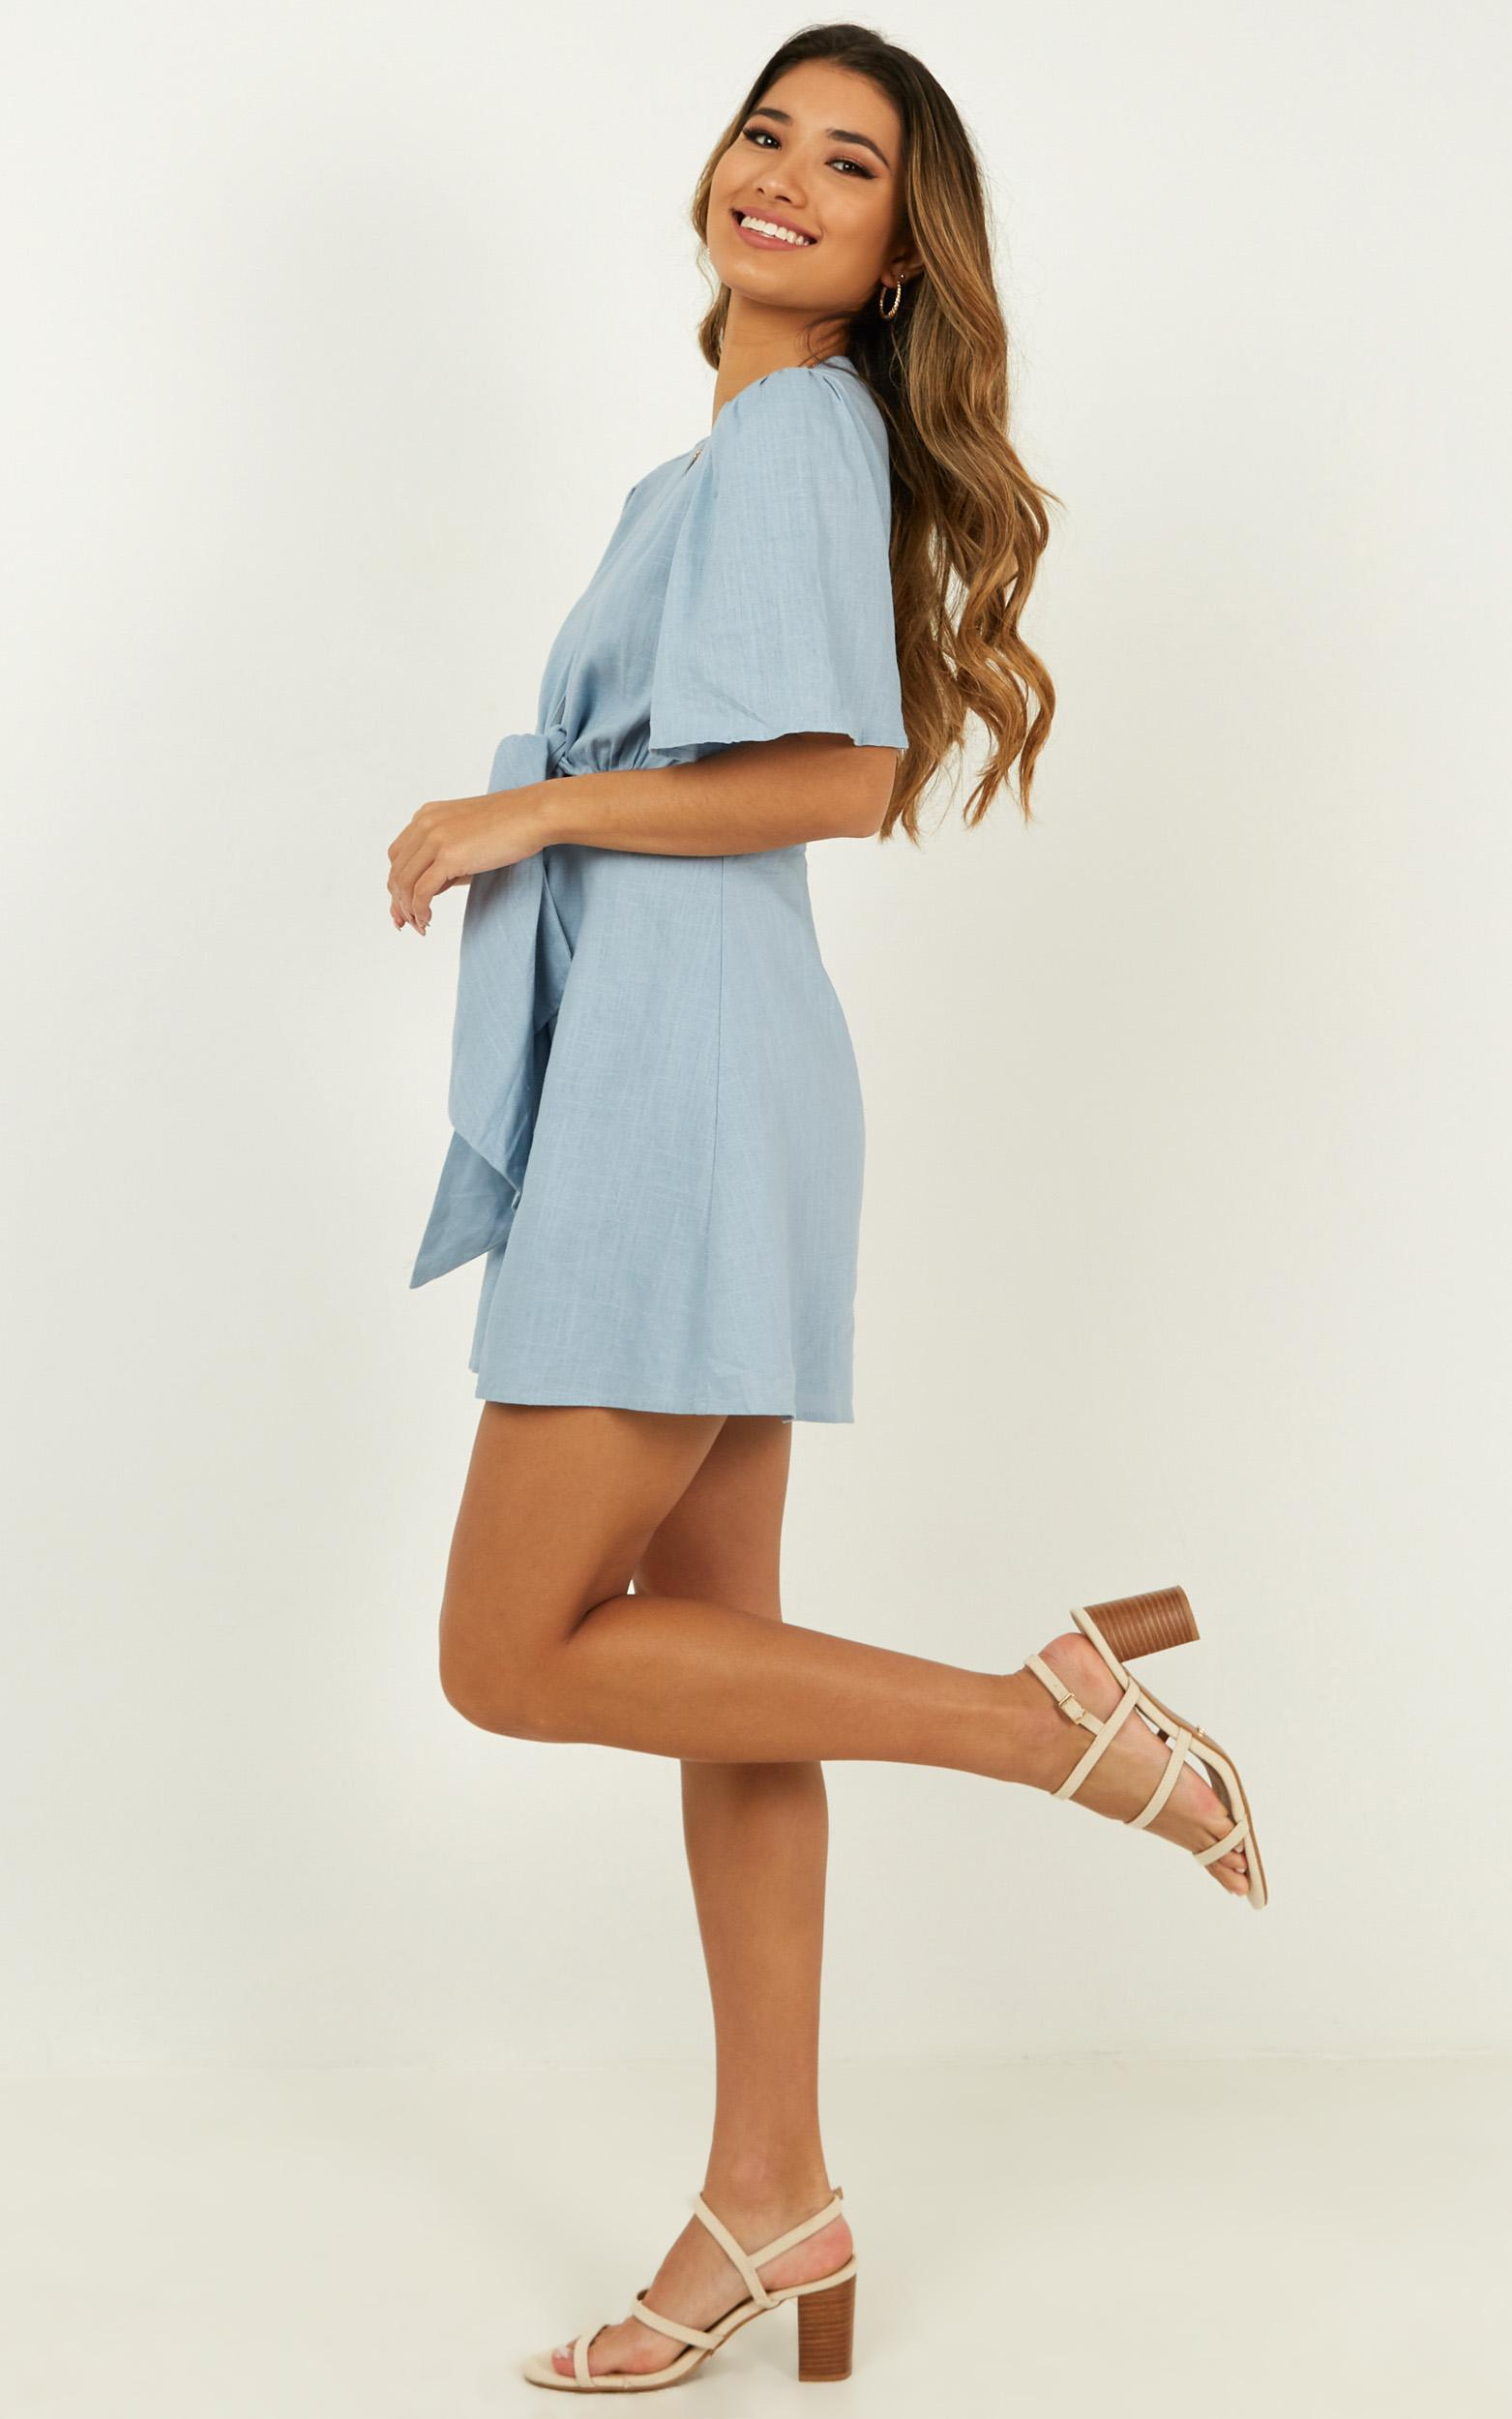 Summer Valley Dress in blue - 20 (XXXXL), Blue, hi-res image number null